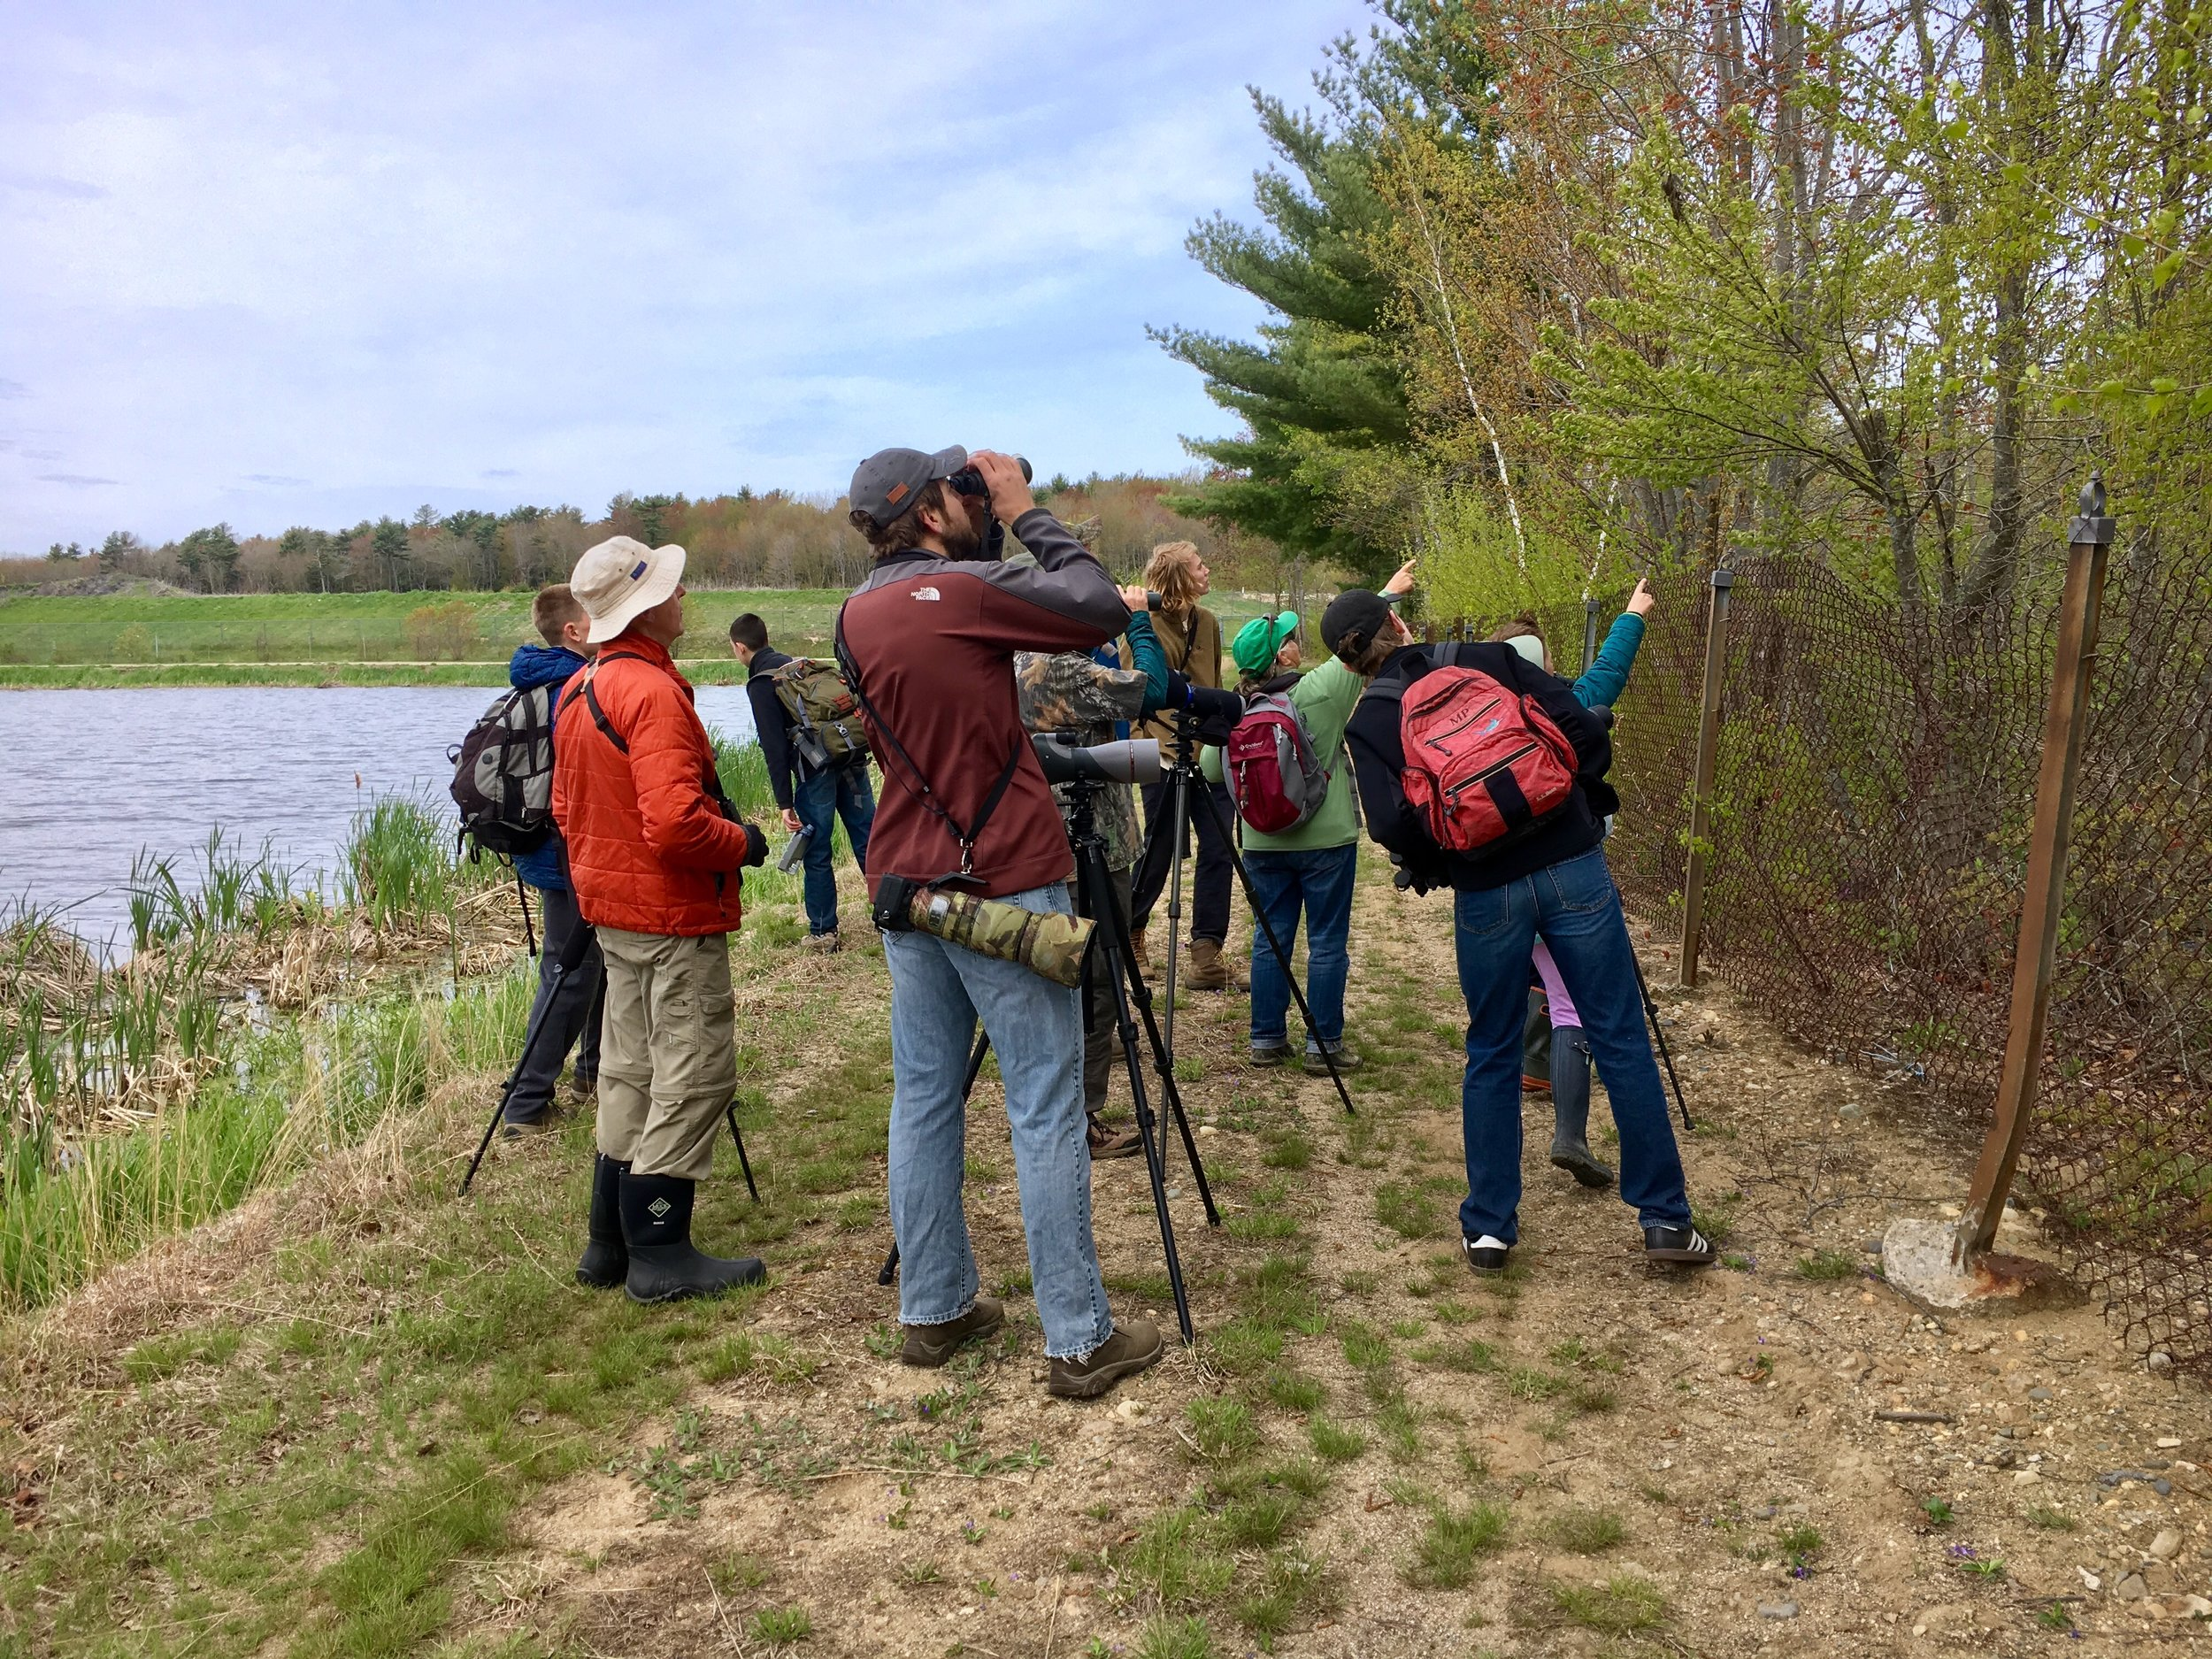 Looking for those warblers!